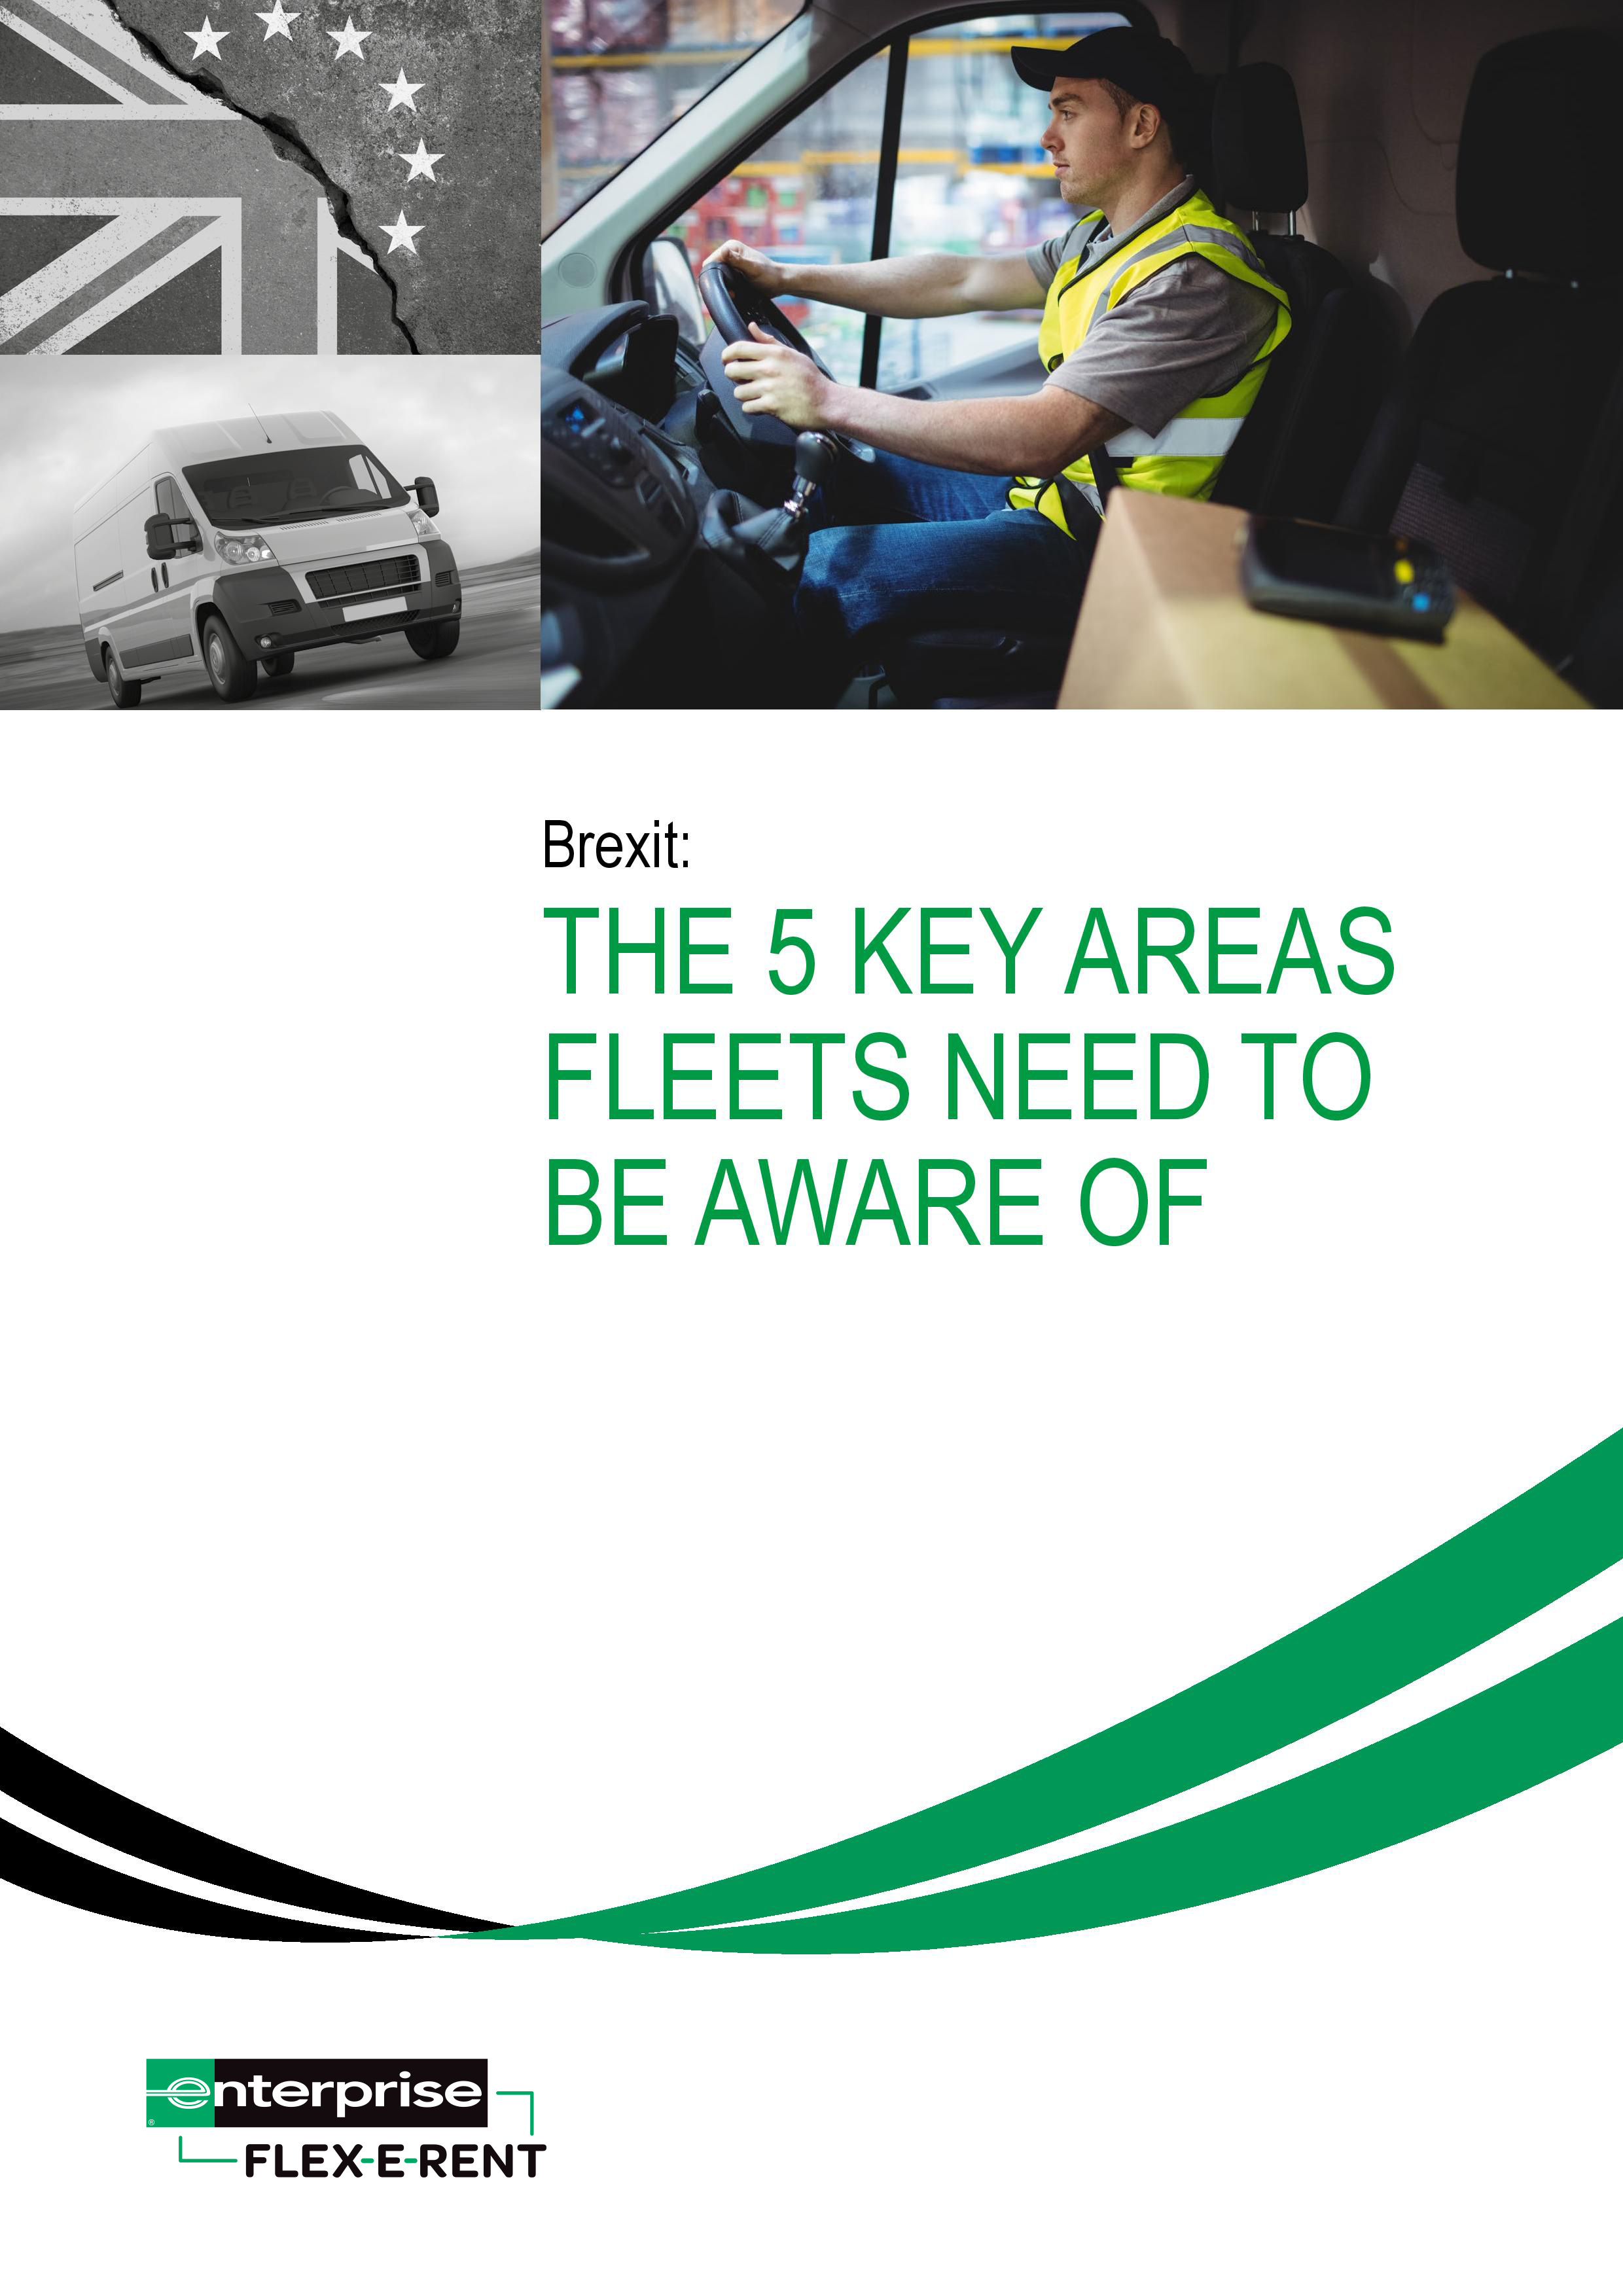 Brexit 5 key areas fleets need to be aware of